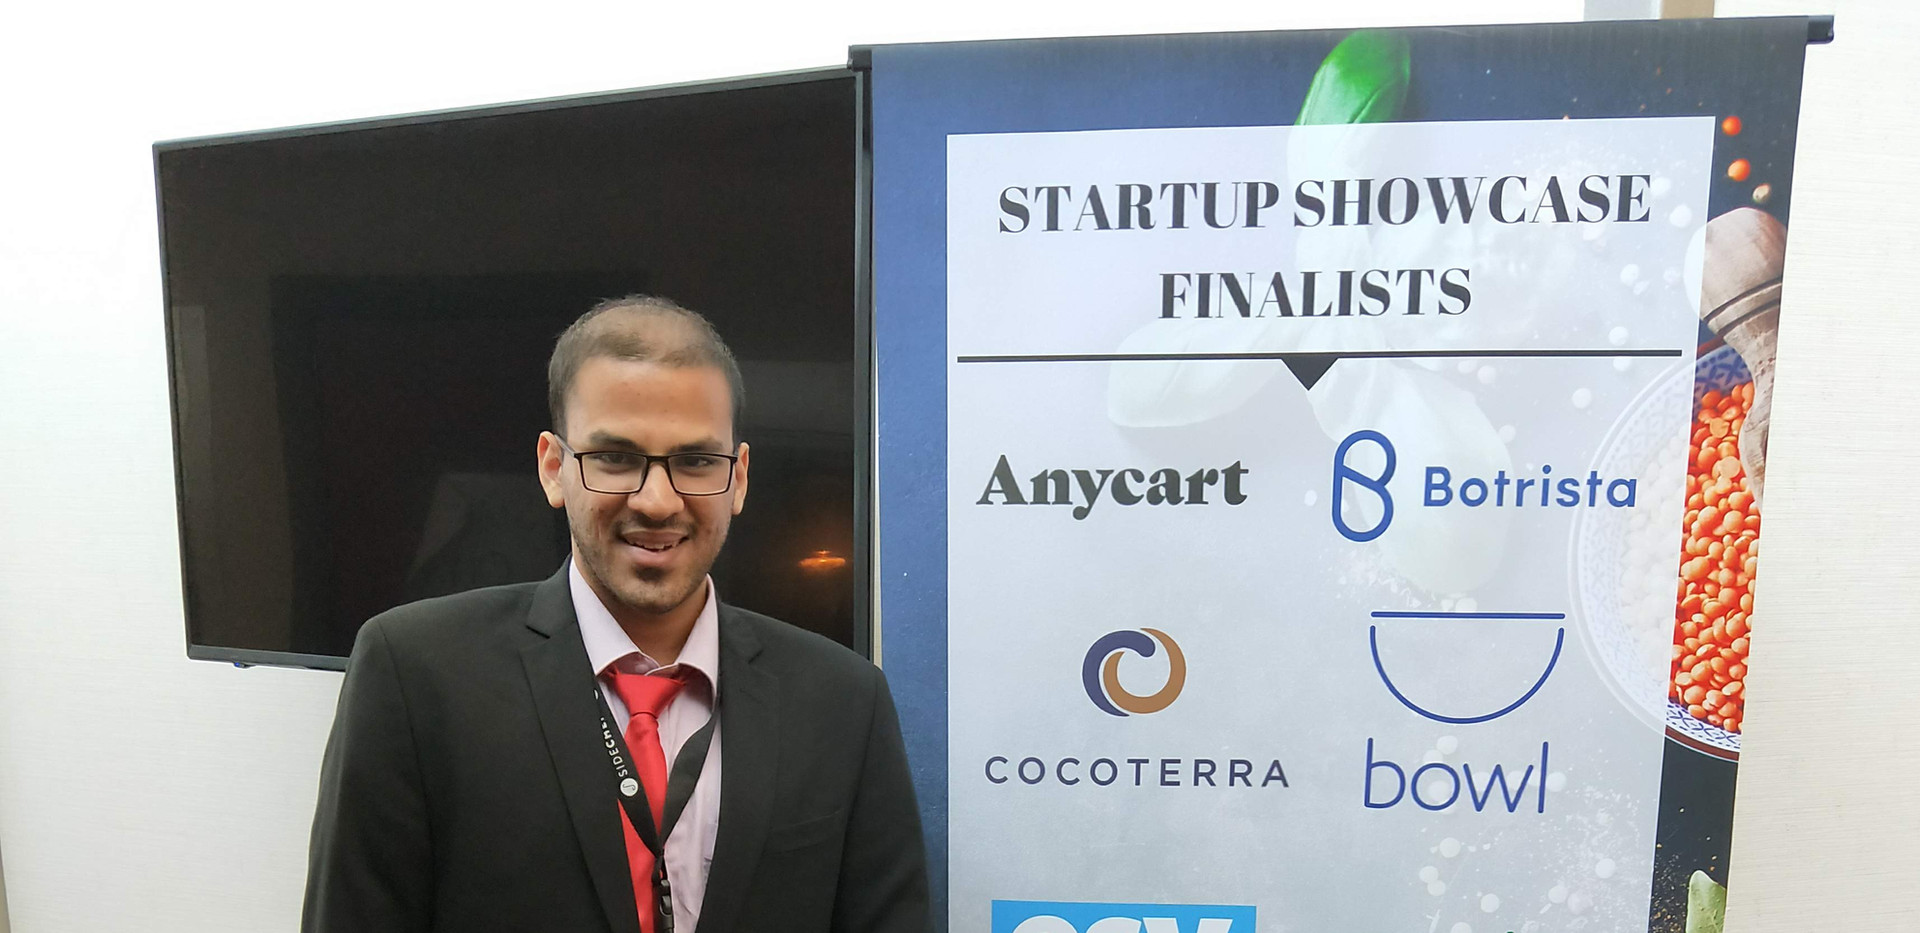 Anrich3D among the 12 finalists!